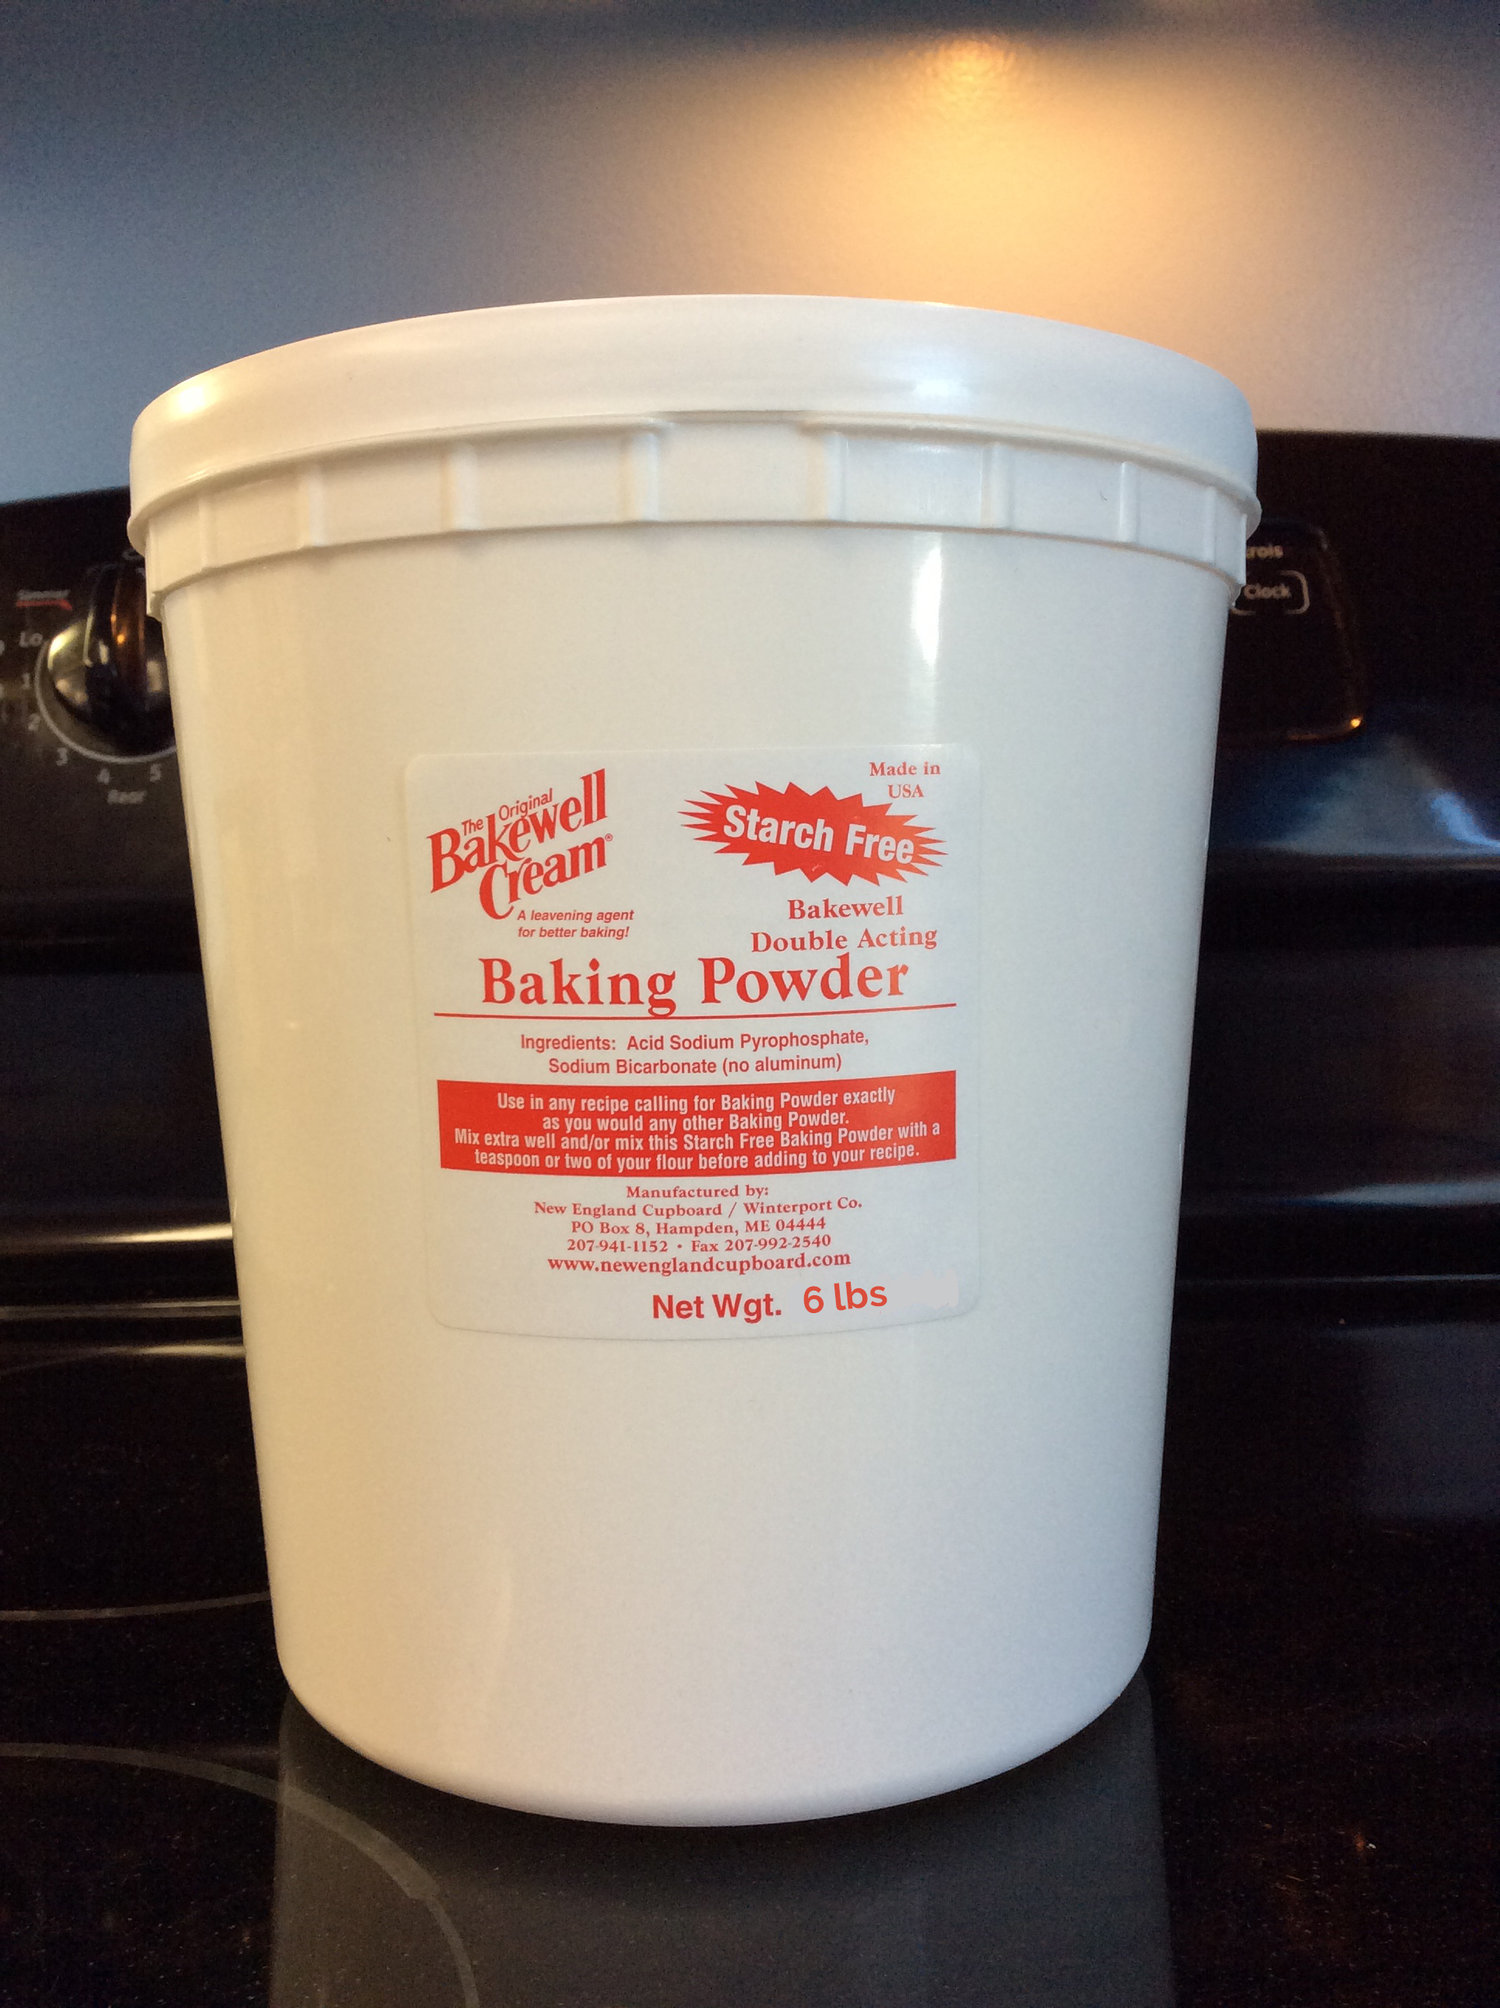 Starch-free Bakewell Baking Powder 6lb Tub — New England Cupboard